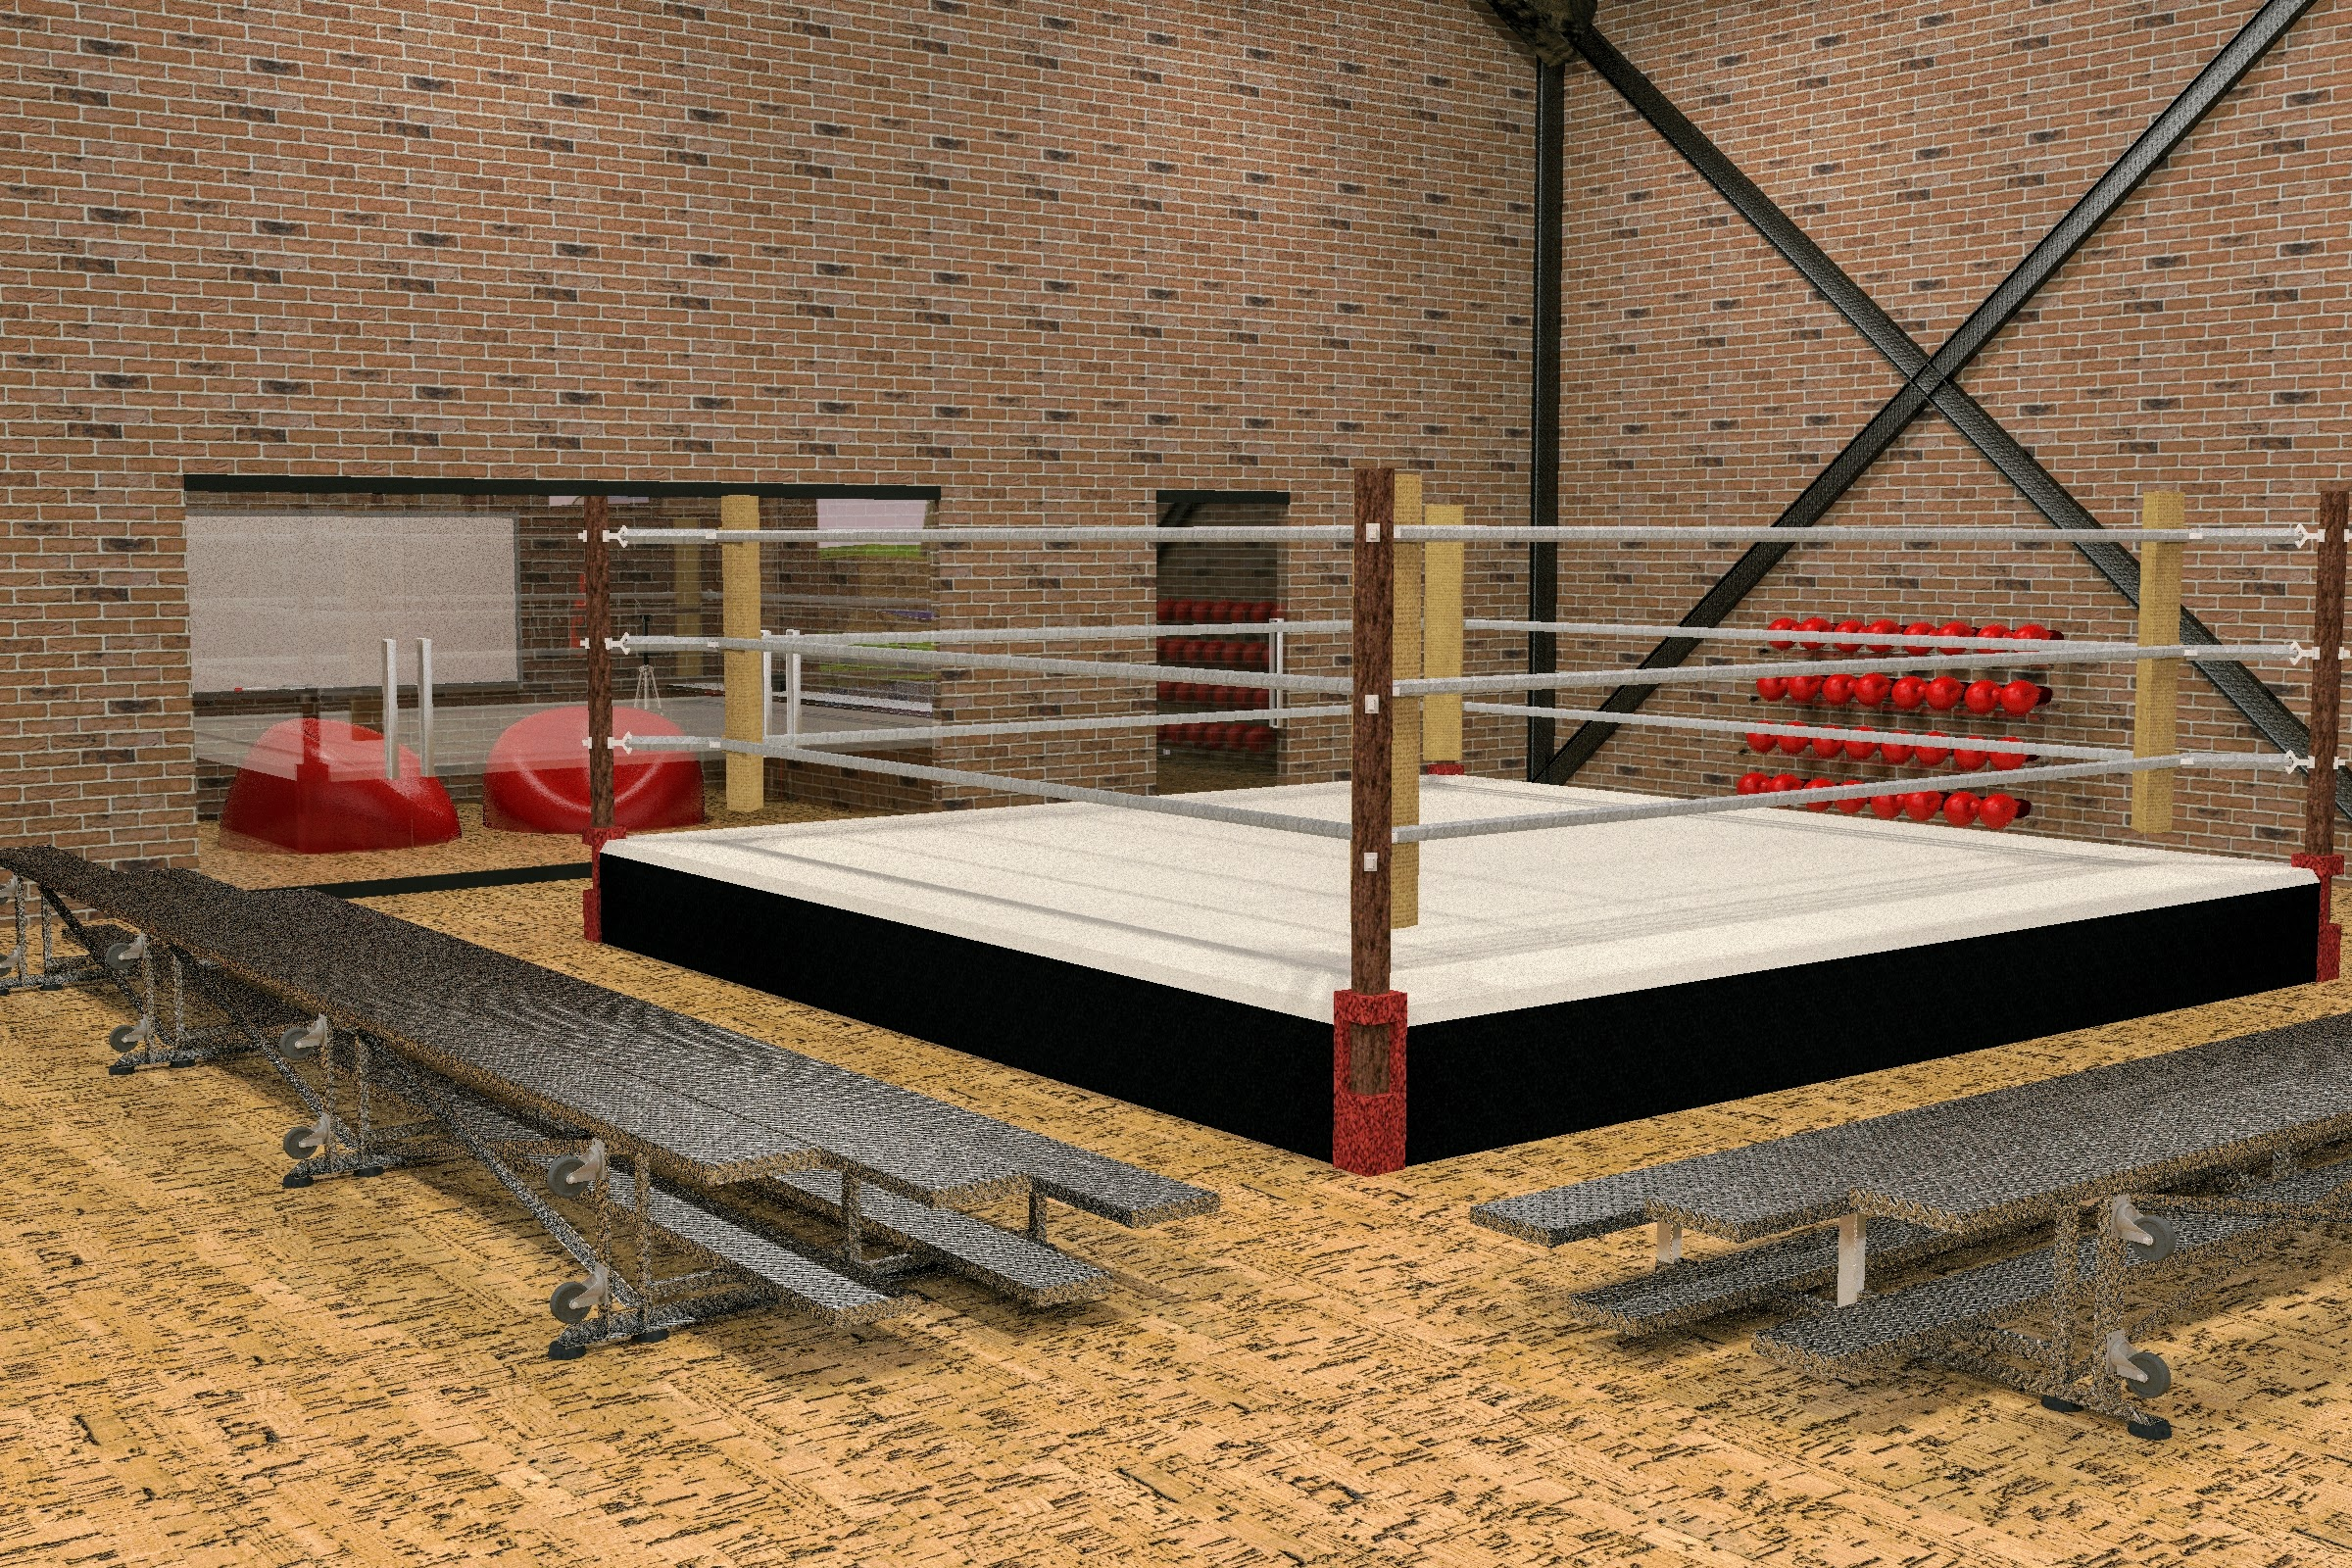 Boxing ring 1.jpg